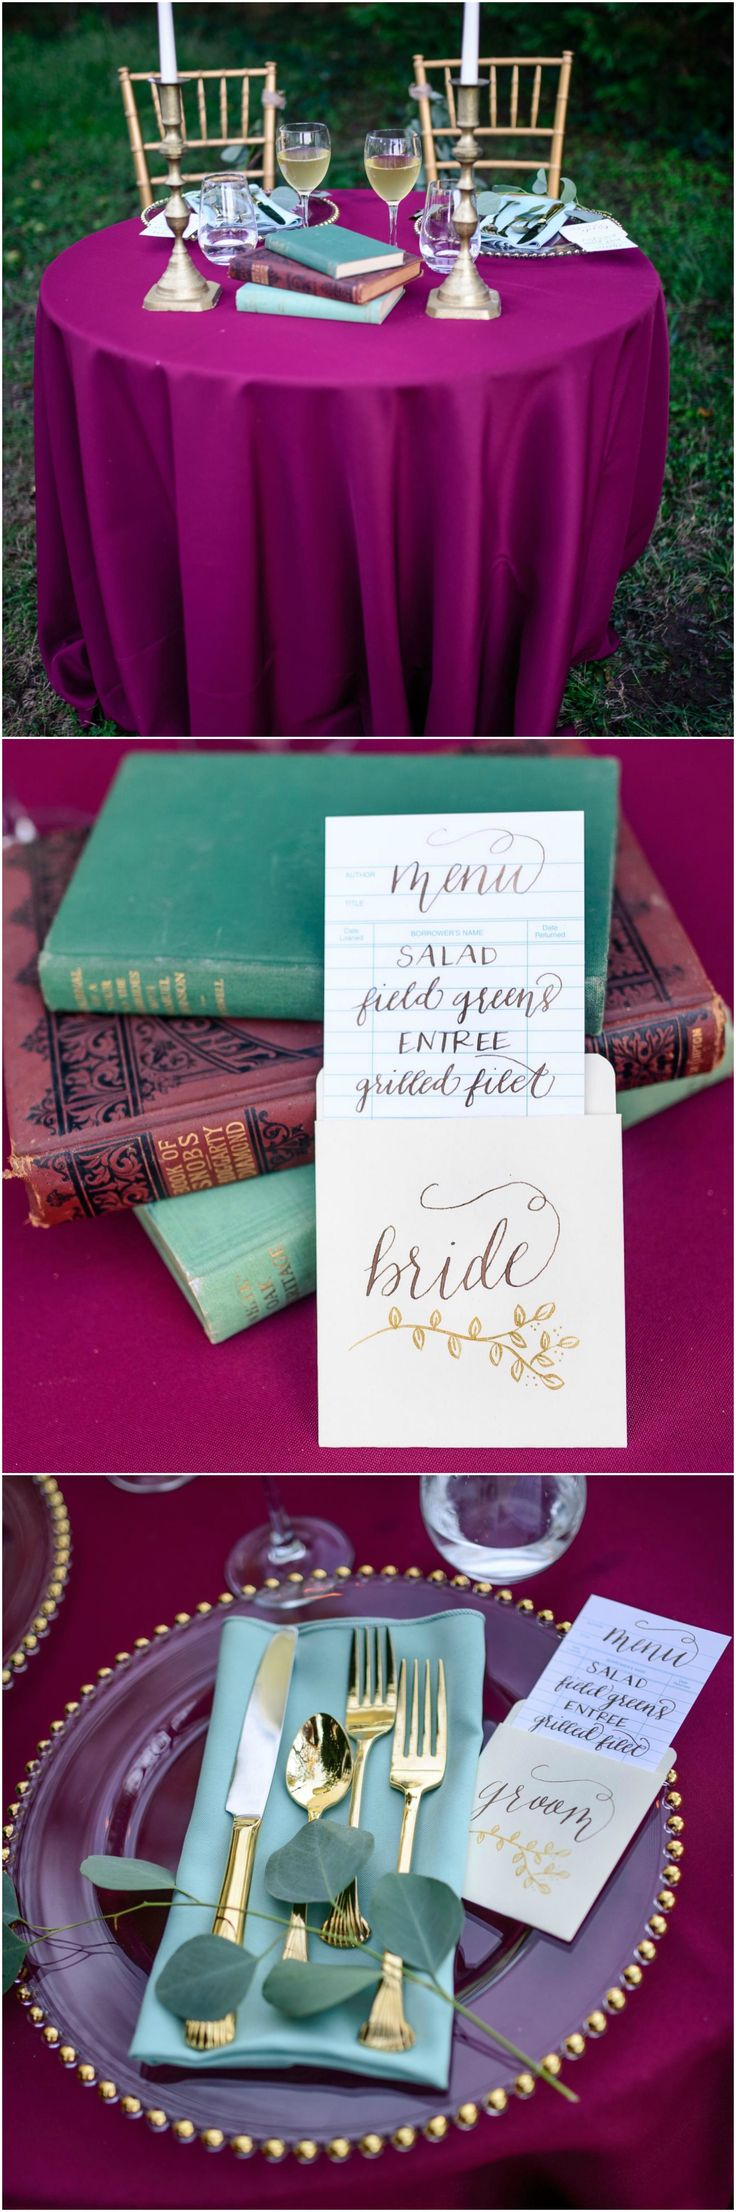 Library-themed wedding, magenta linens, candlesticks, book rental cards, turquoise napkins, clear glass plates // Emily Marie Photography